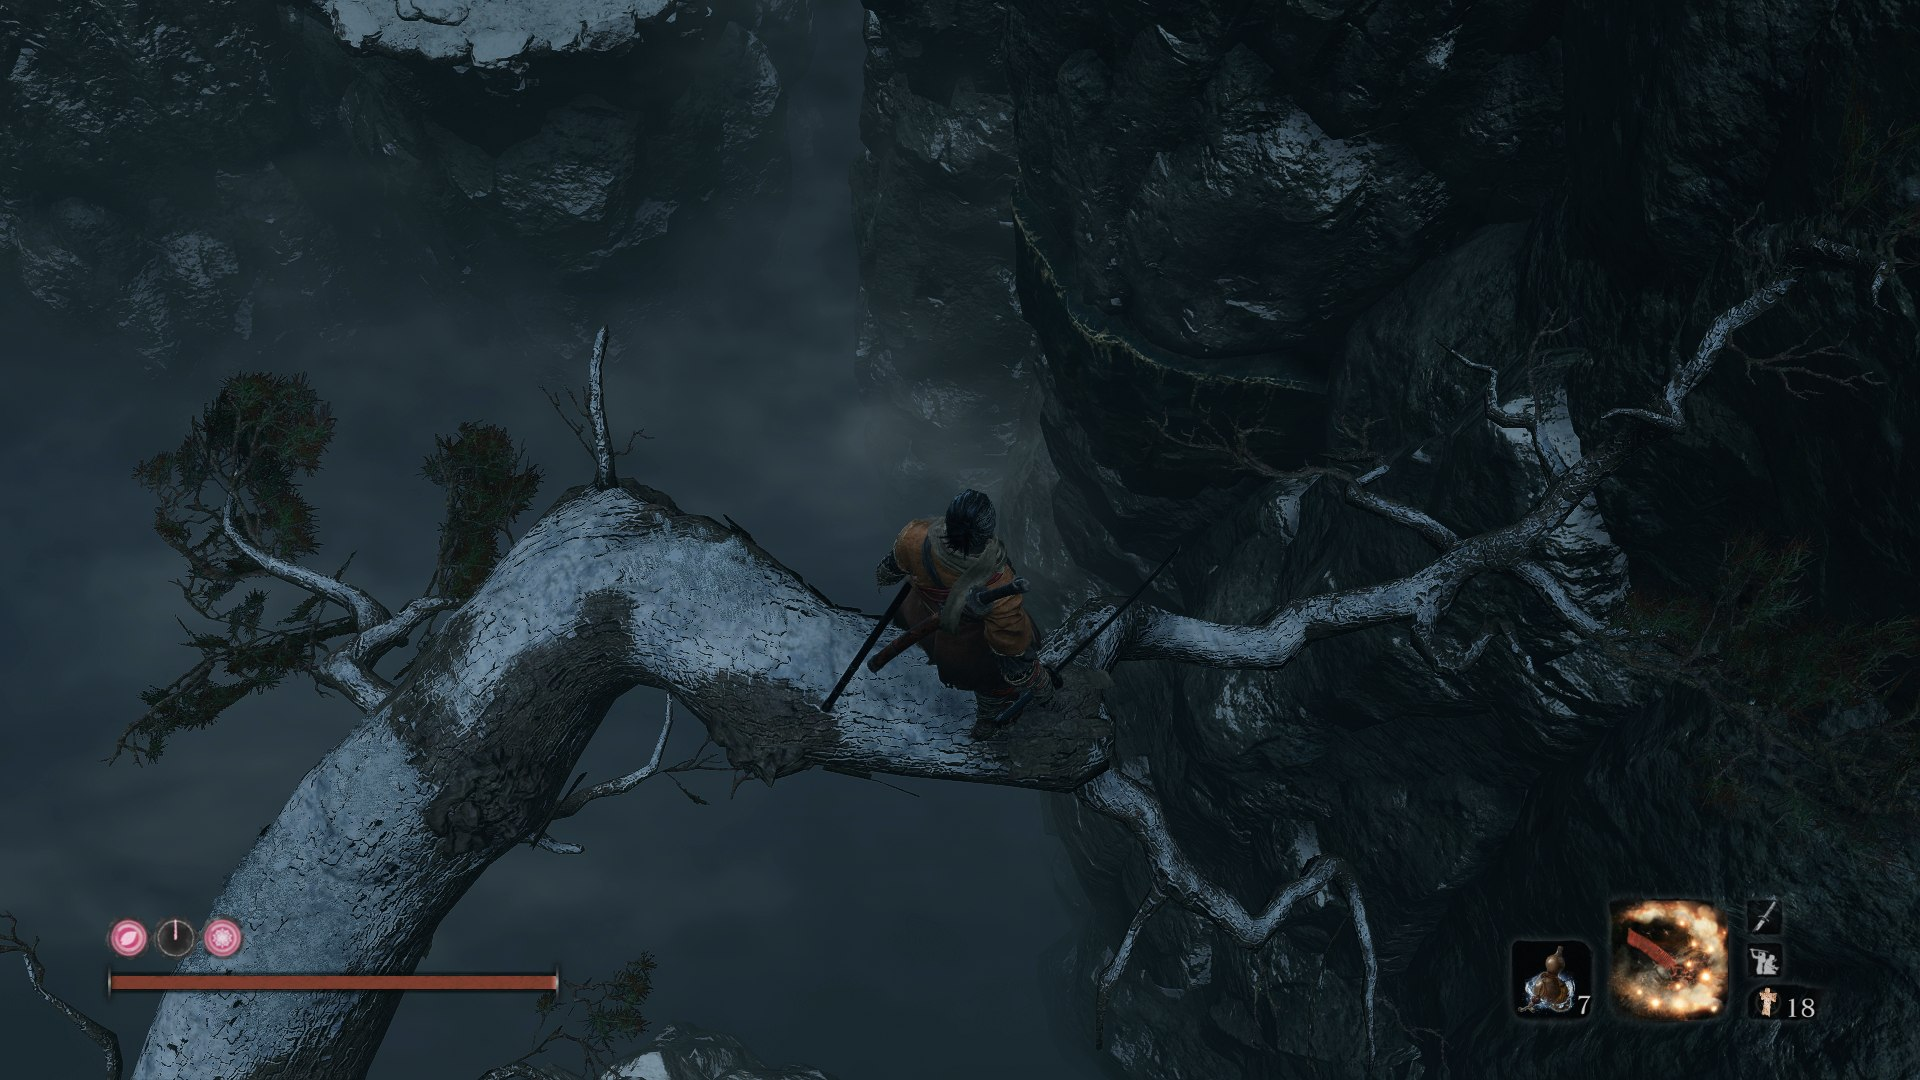 Where to Find and Beat the Headless in Sekiro: Shadows Die